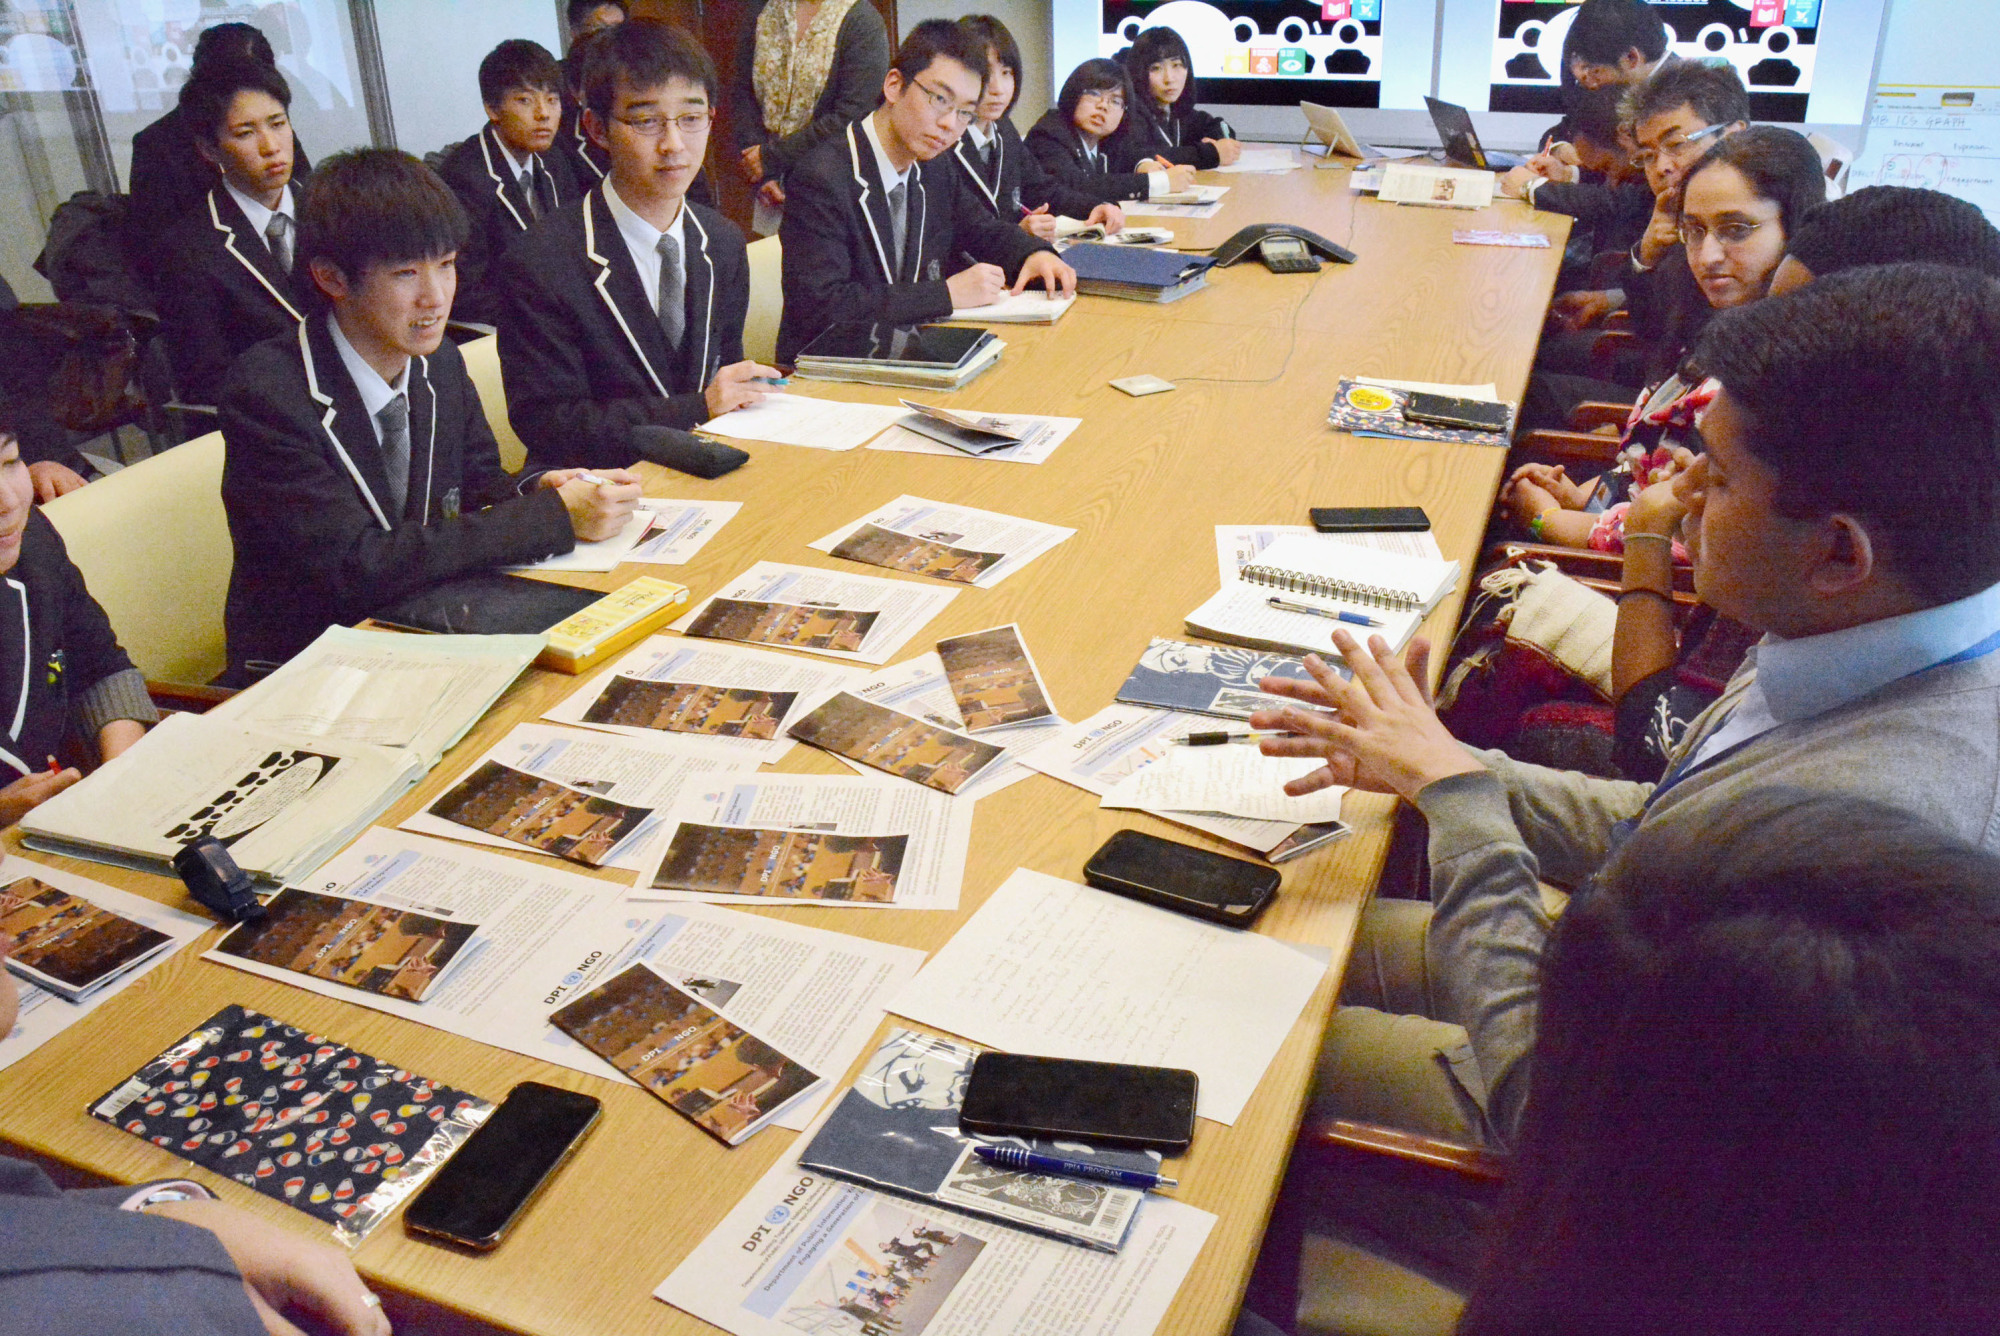 Students from Fukushima's Futaba Future High School meet diplomats, staff and youth representatives at the United Nations in New York on March 9. | KYODO